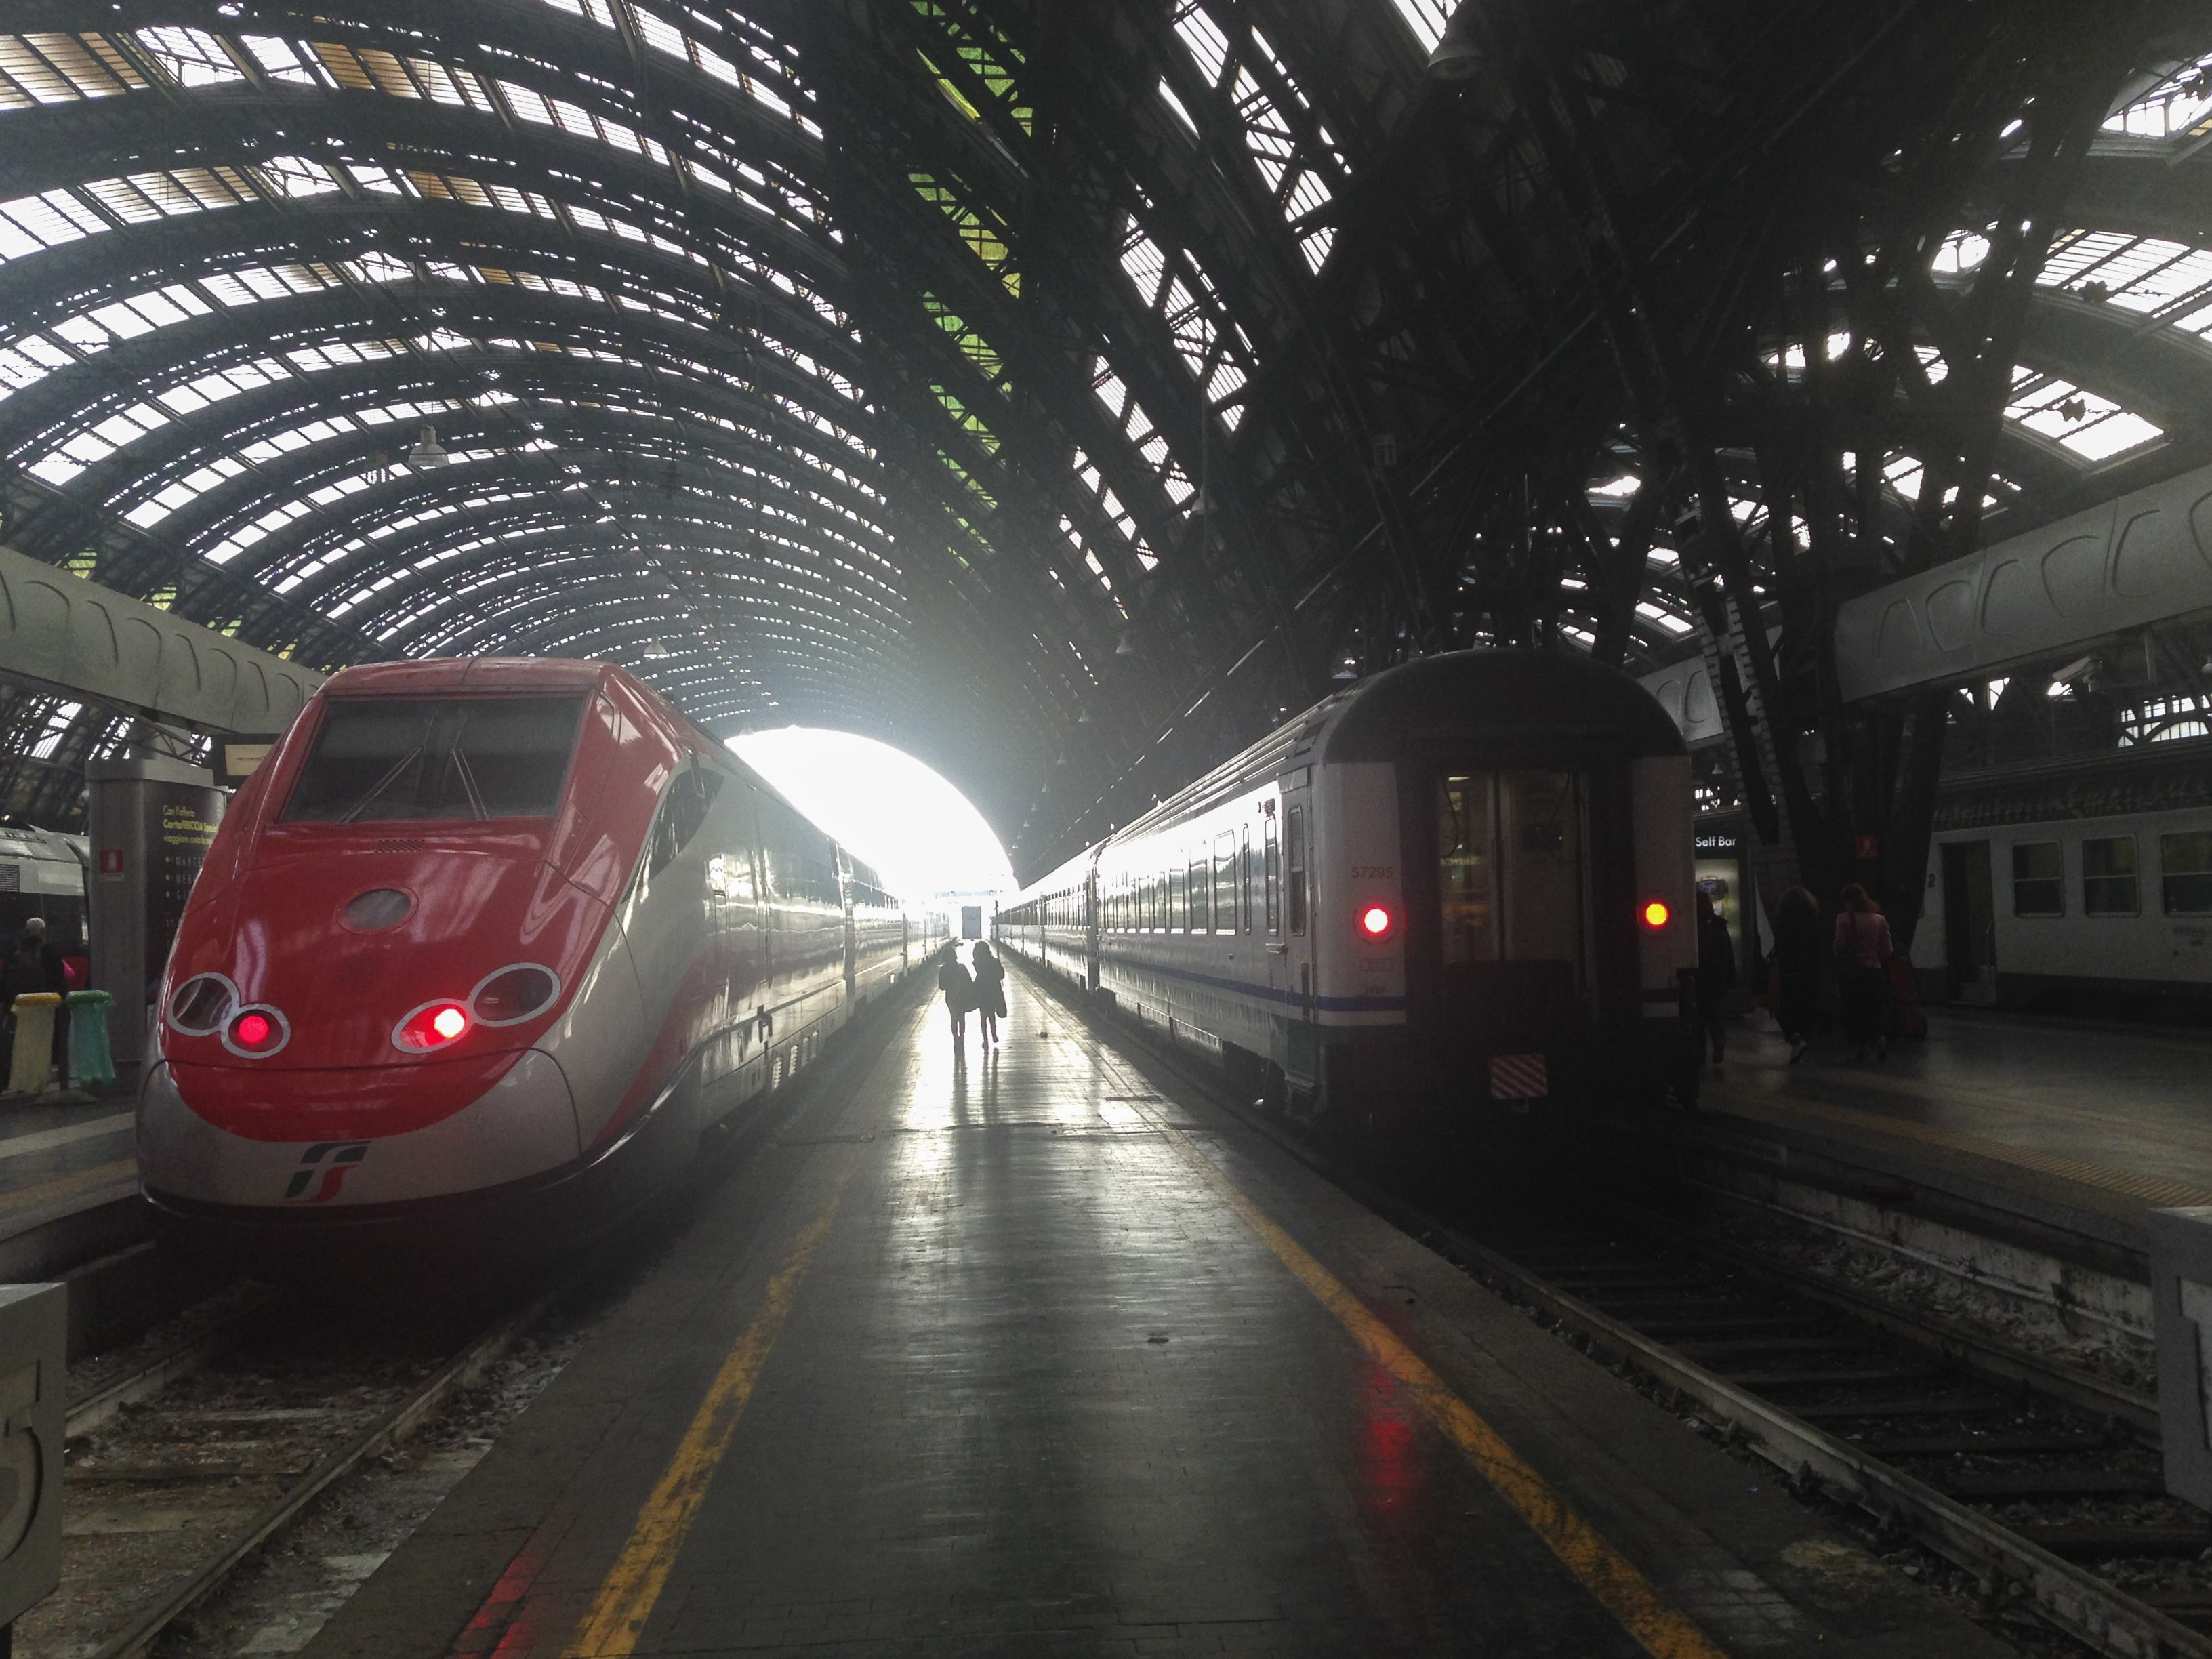 Freccia and Regionale trains